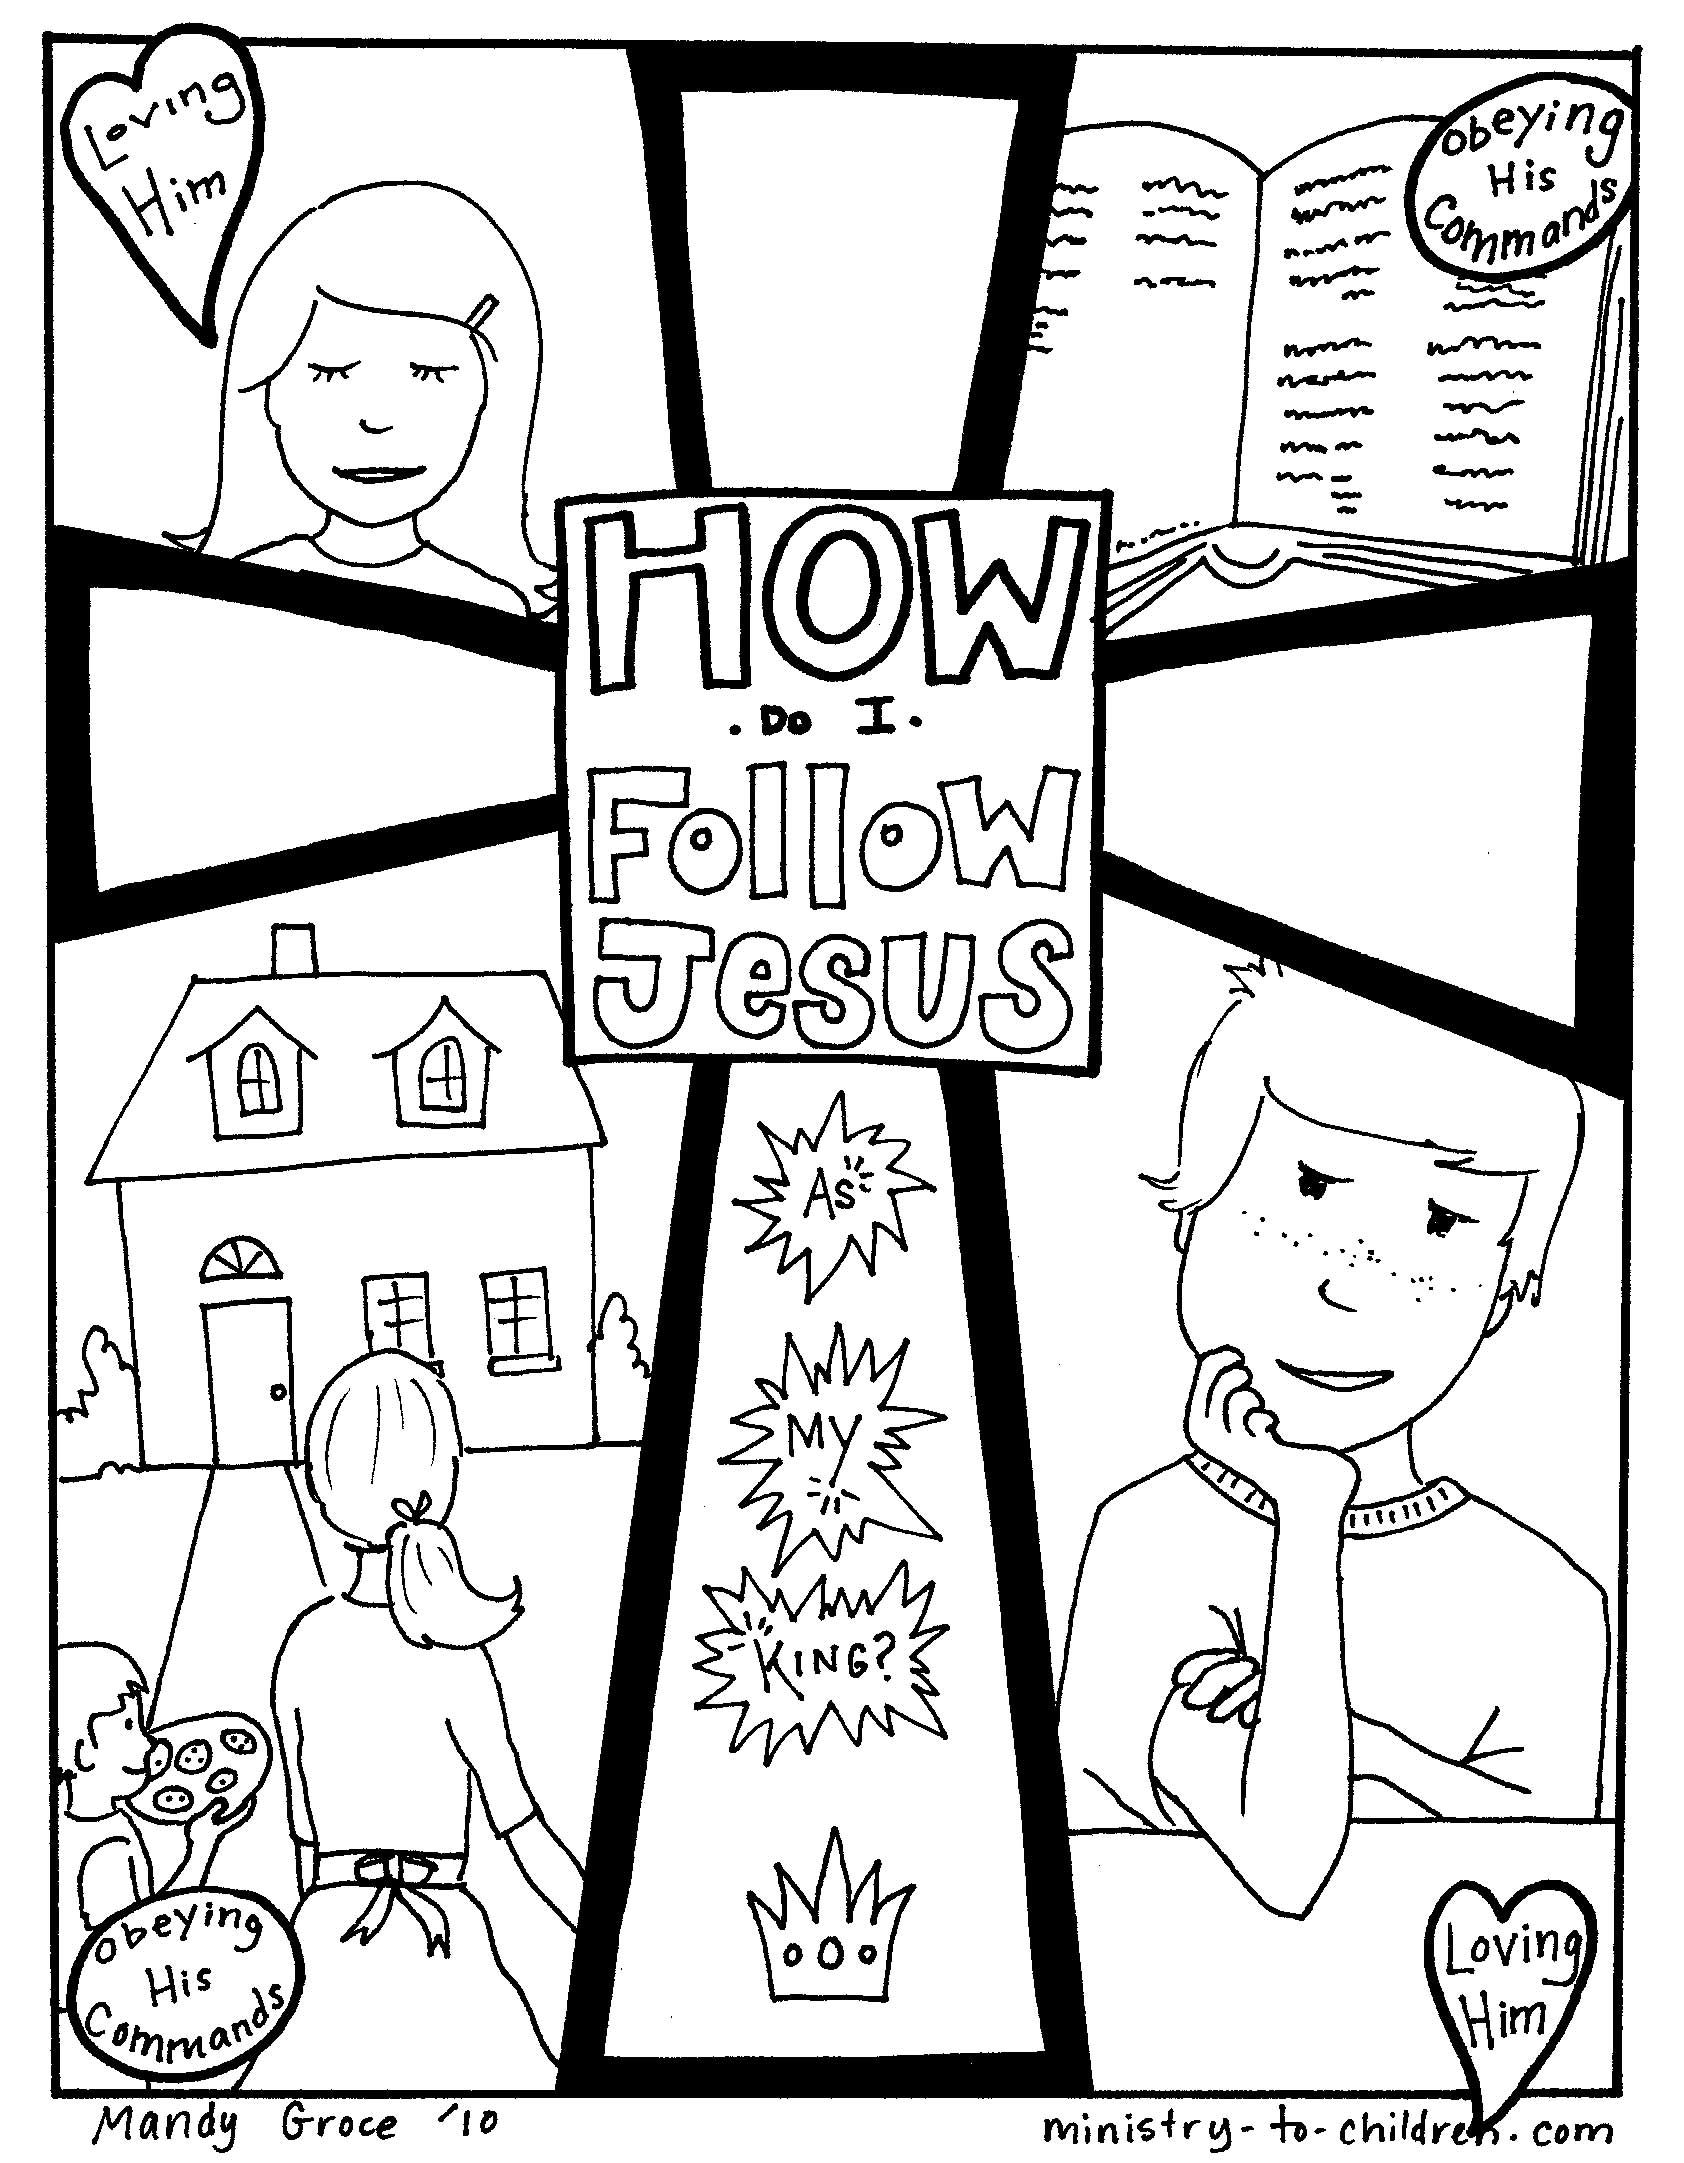 I Will Follow Jesus Colouring Pages Jesus Coloring Pages Bible